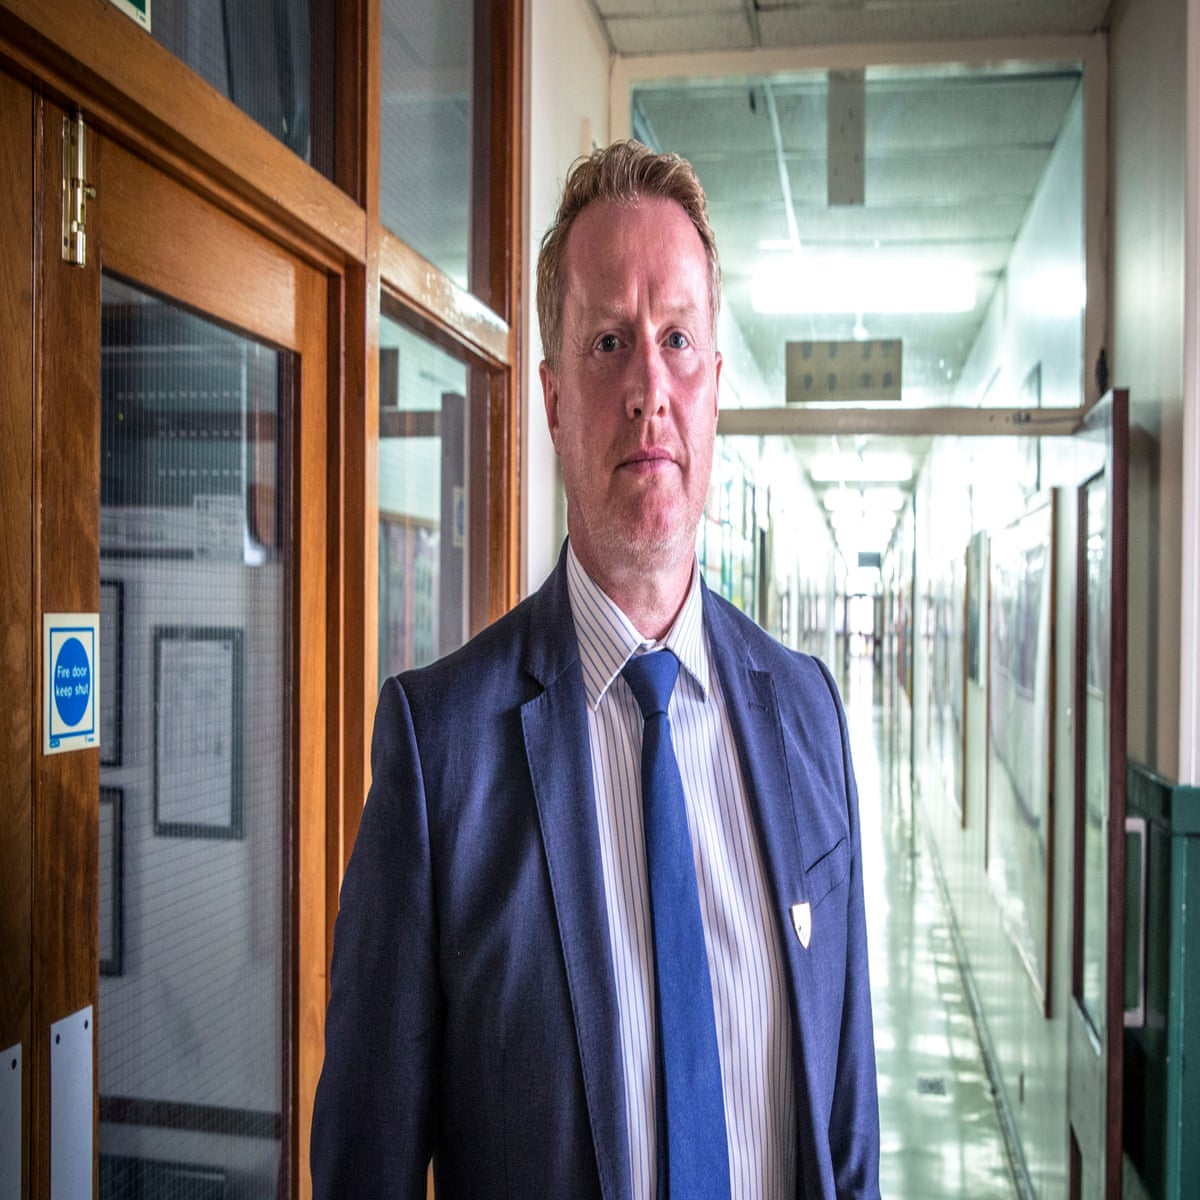 BBC headteacher tells of outpouring of sympathy after he resigned on TV